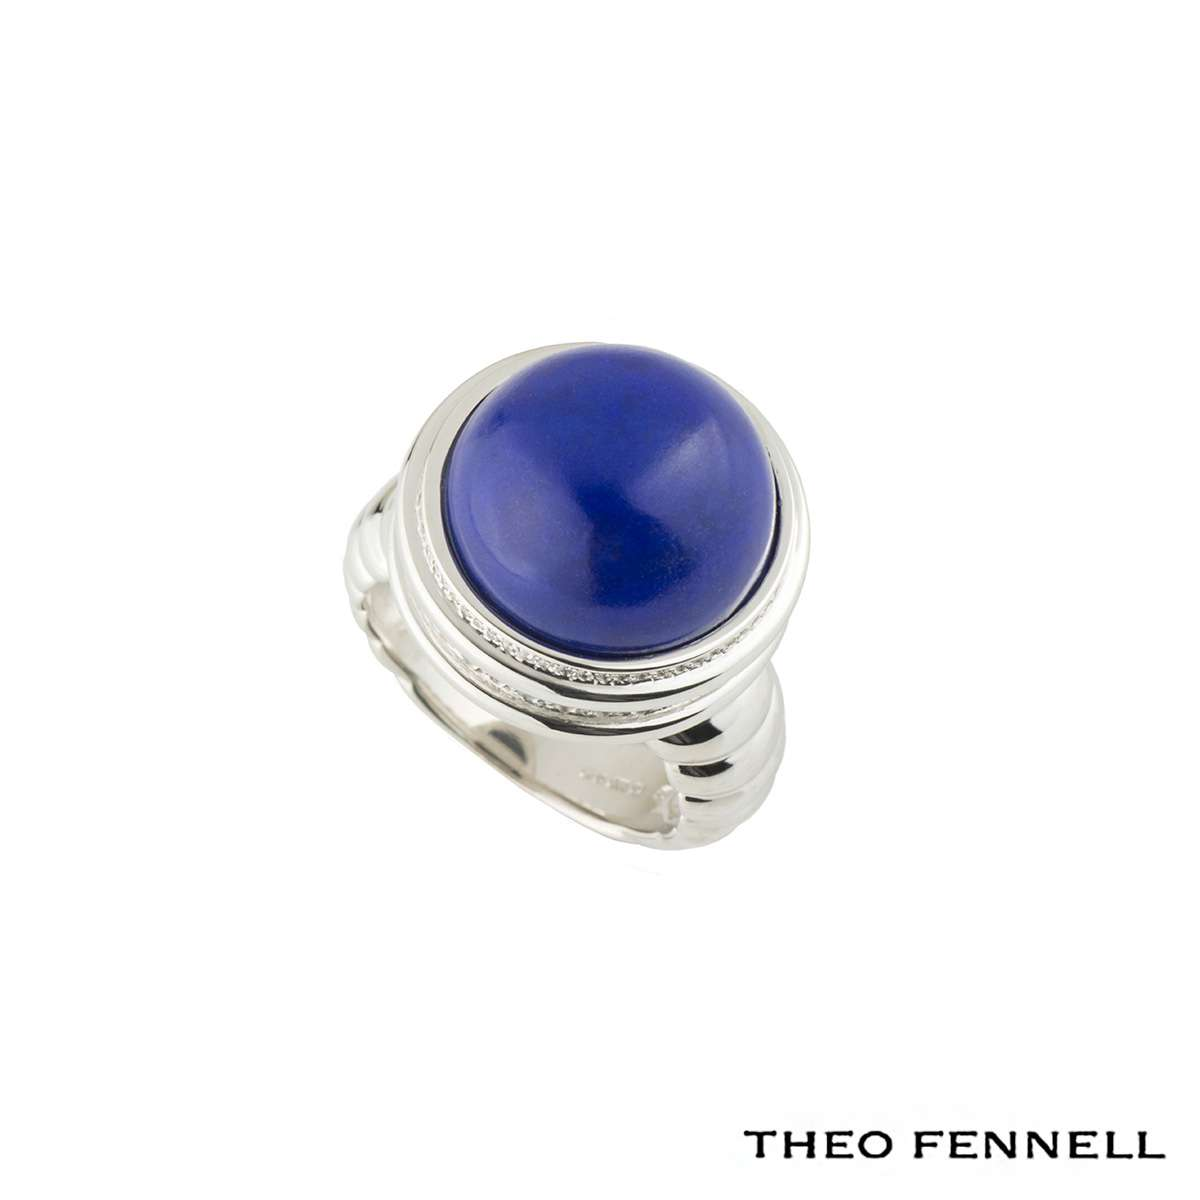 Theo Fennell Whisper Diamond and Lapis Lazuli Ring